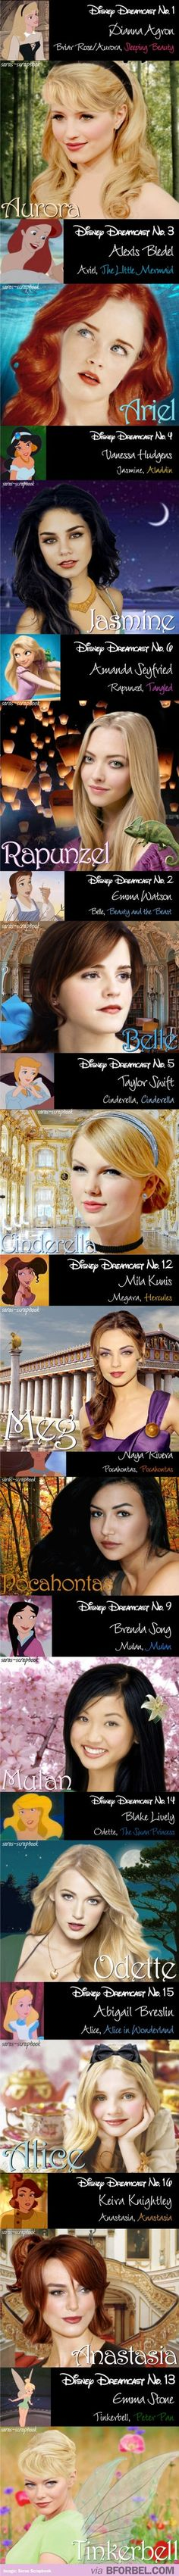 I like all these picks! Although I think I prefer Amy Adams over Alexis Bledel for Ariel.